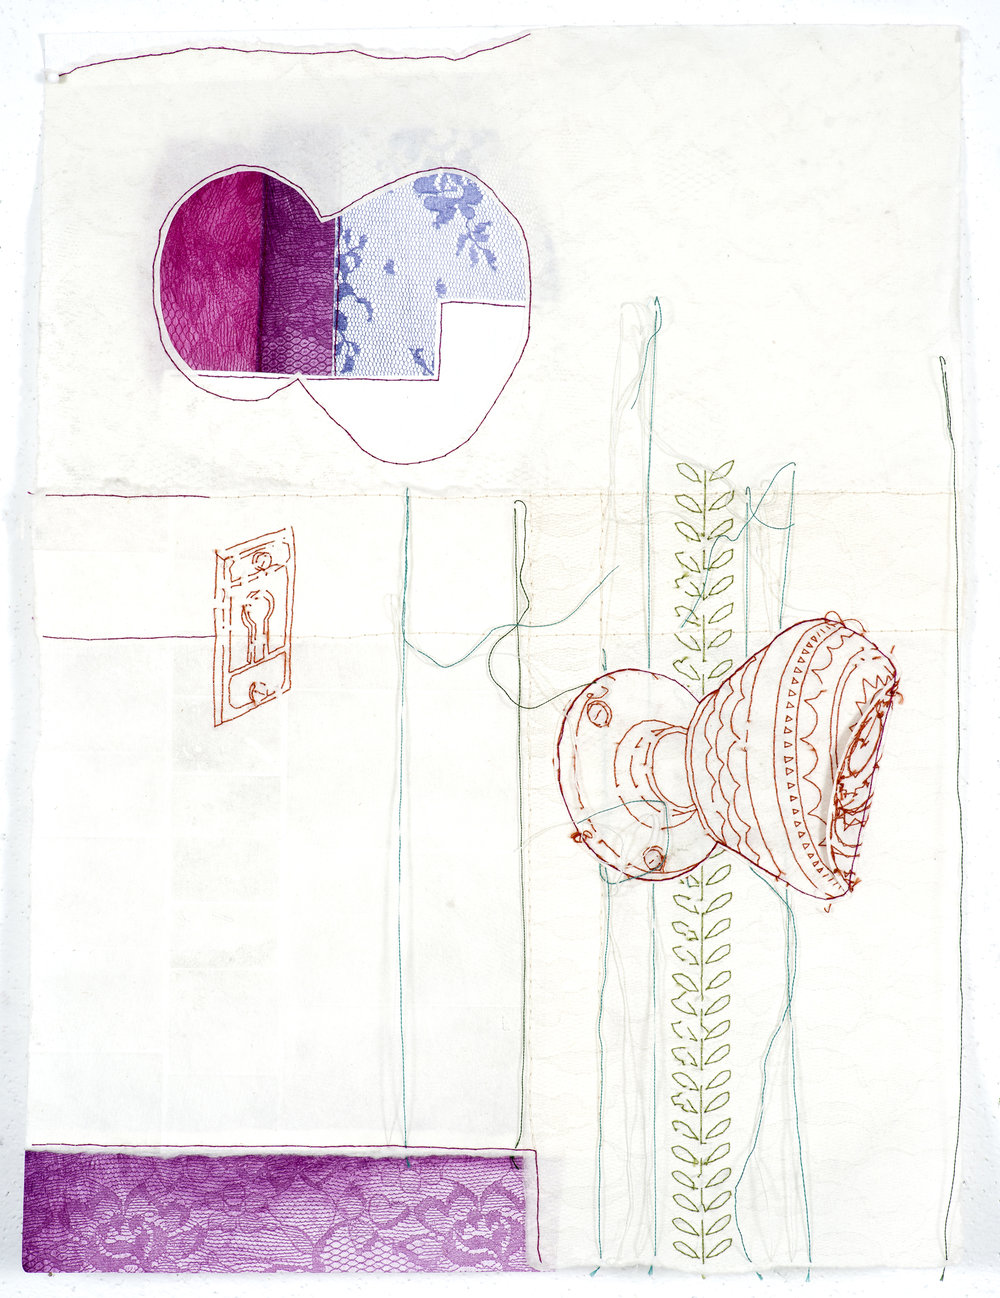 removing/shifting (doorknob)   2014 monoprint with embroidery, etching, letterpress, and handmade paper